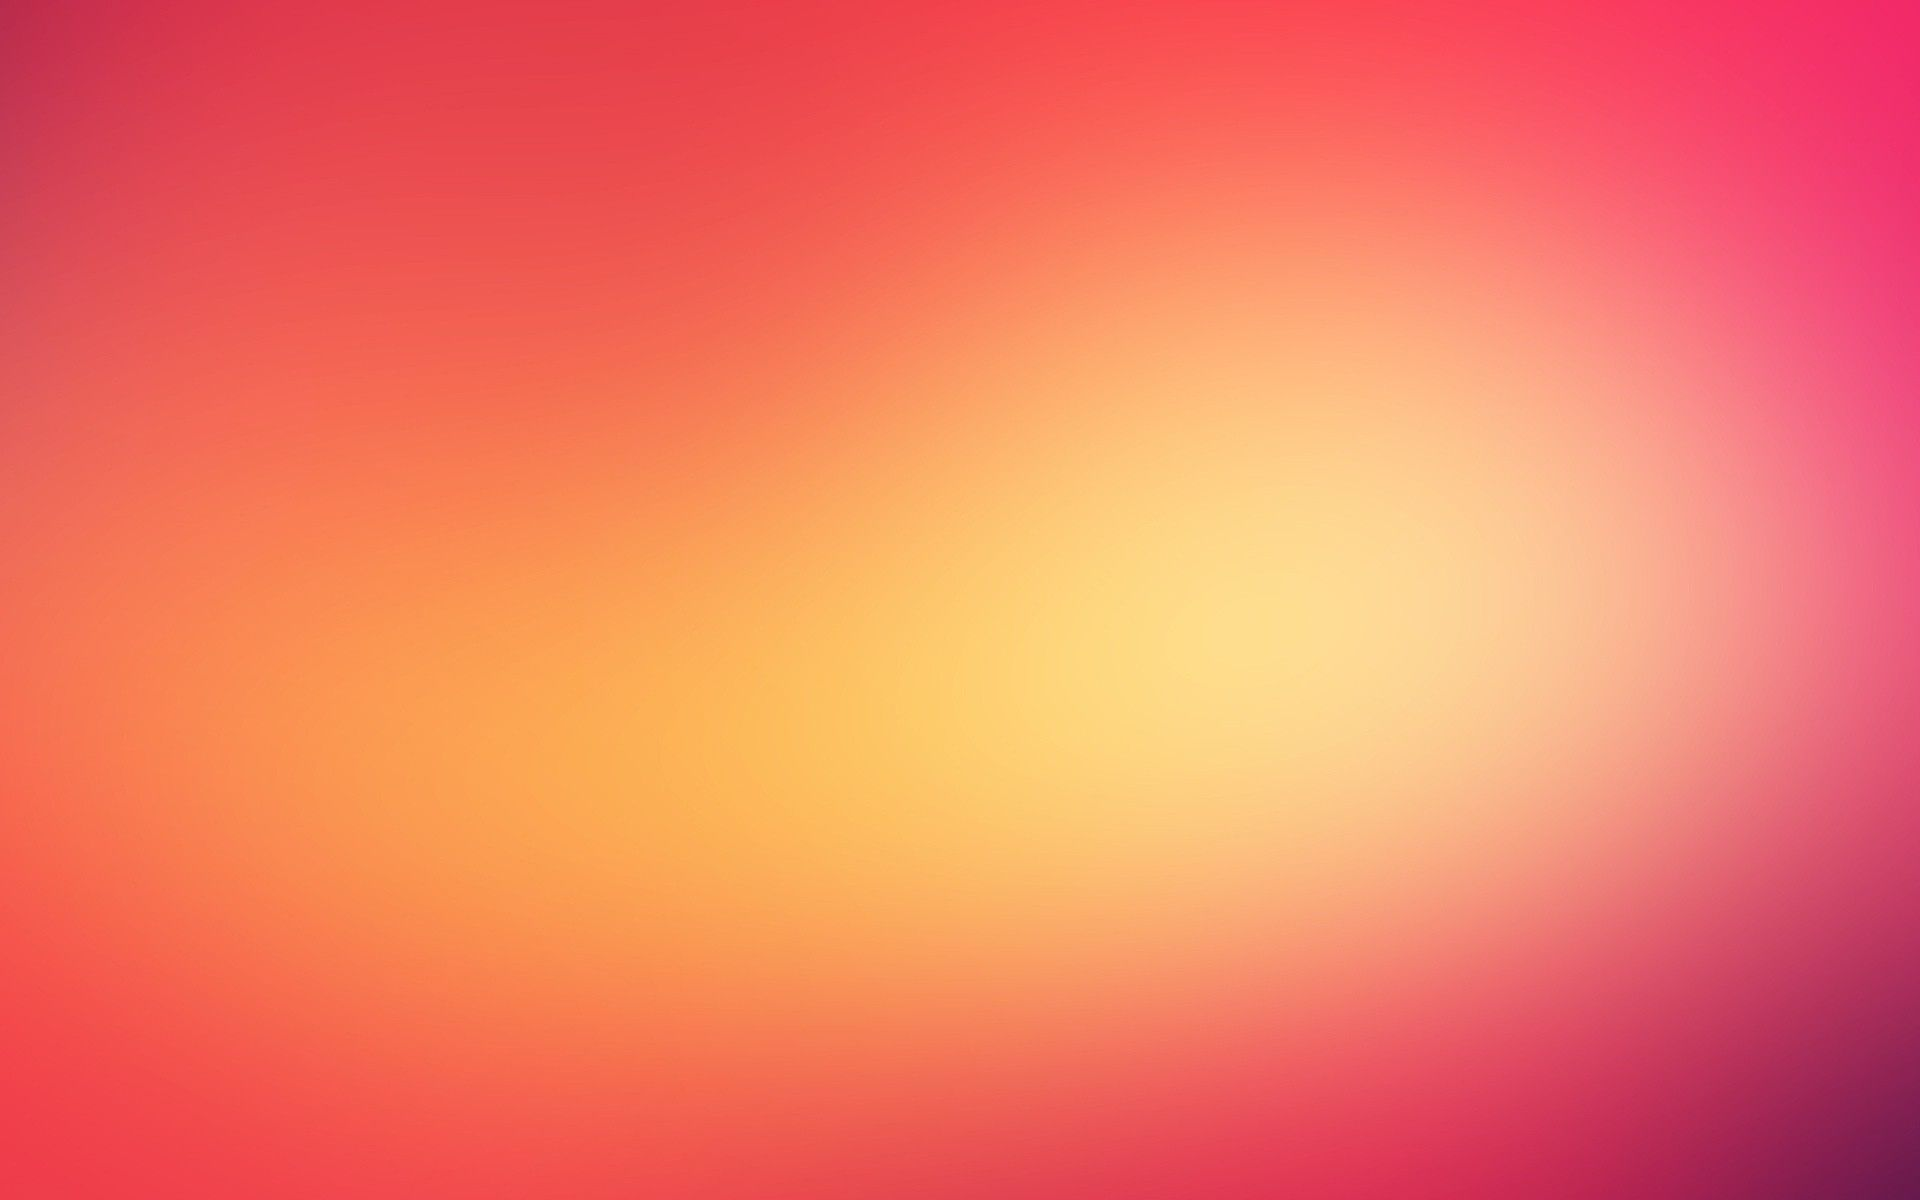 Warm Blurred Colors   ImgMob Red paint colors Solid color 1920x1200